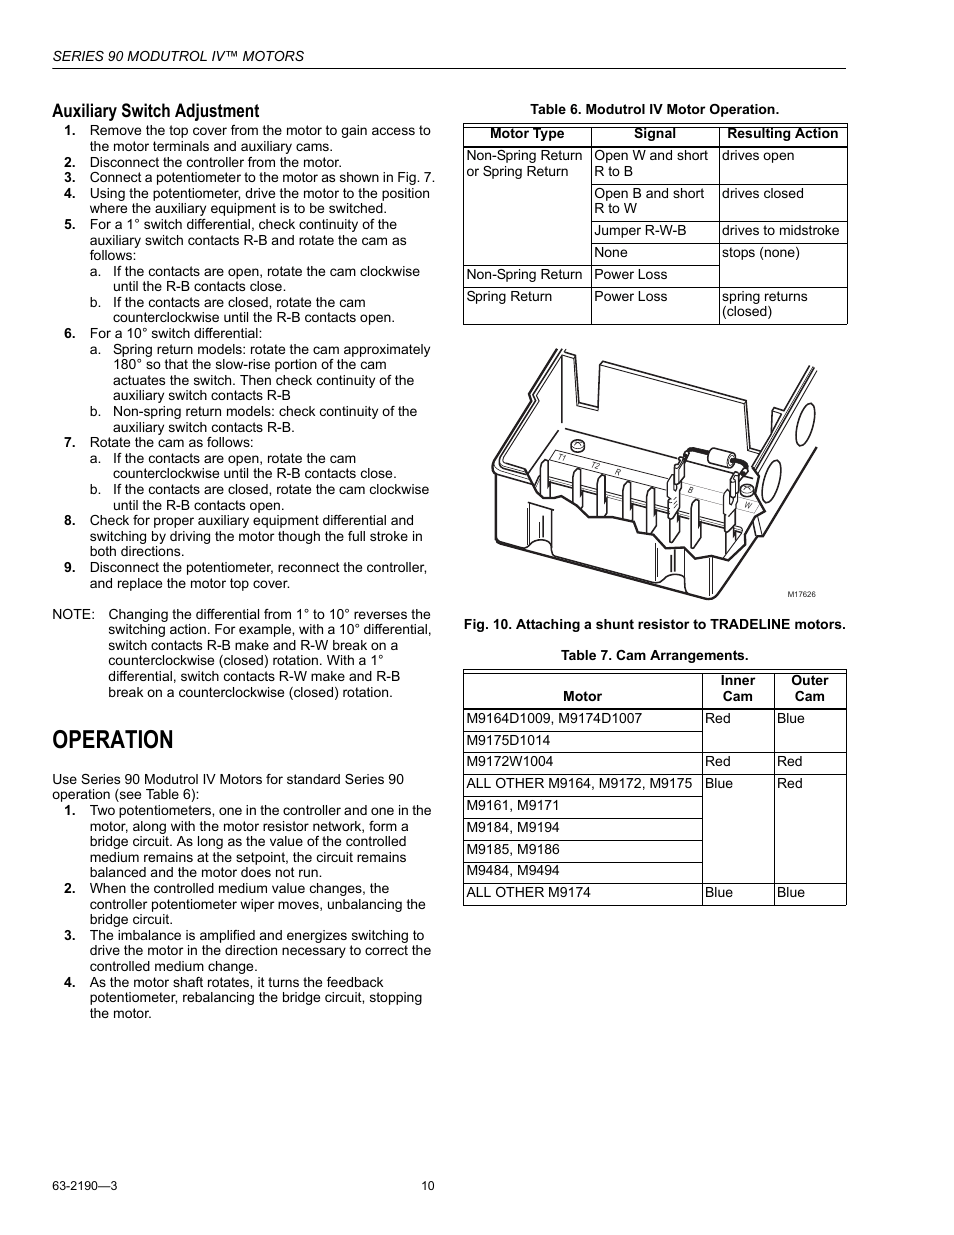 medium resolution of operation auxiliary switch adjustment honeywell modutrol iv motors series 90 user manual page 10 12